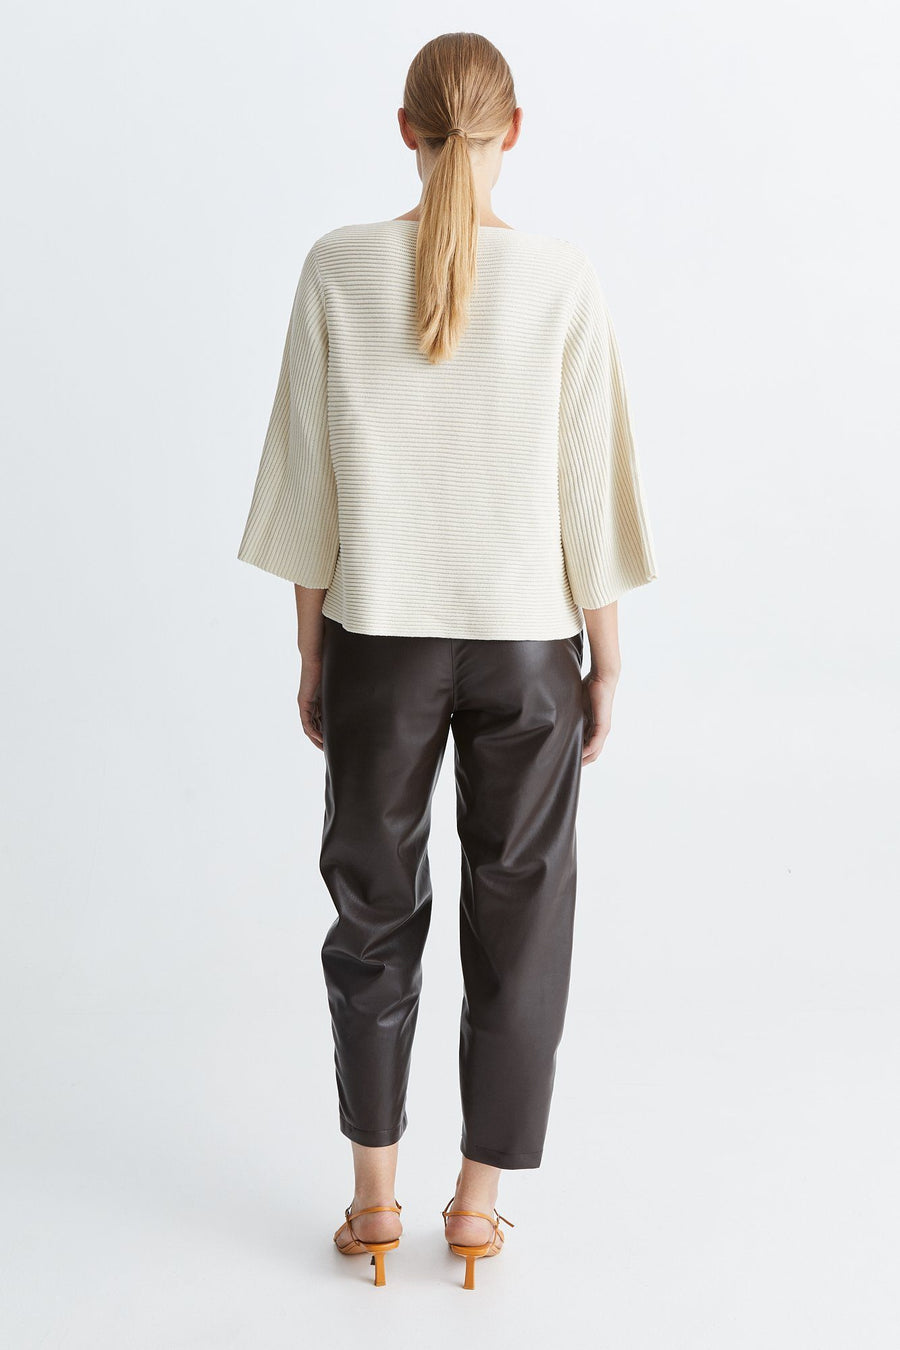 RITA SWEATER - OFF WHITE Sweater Stylein